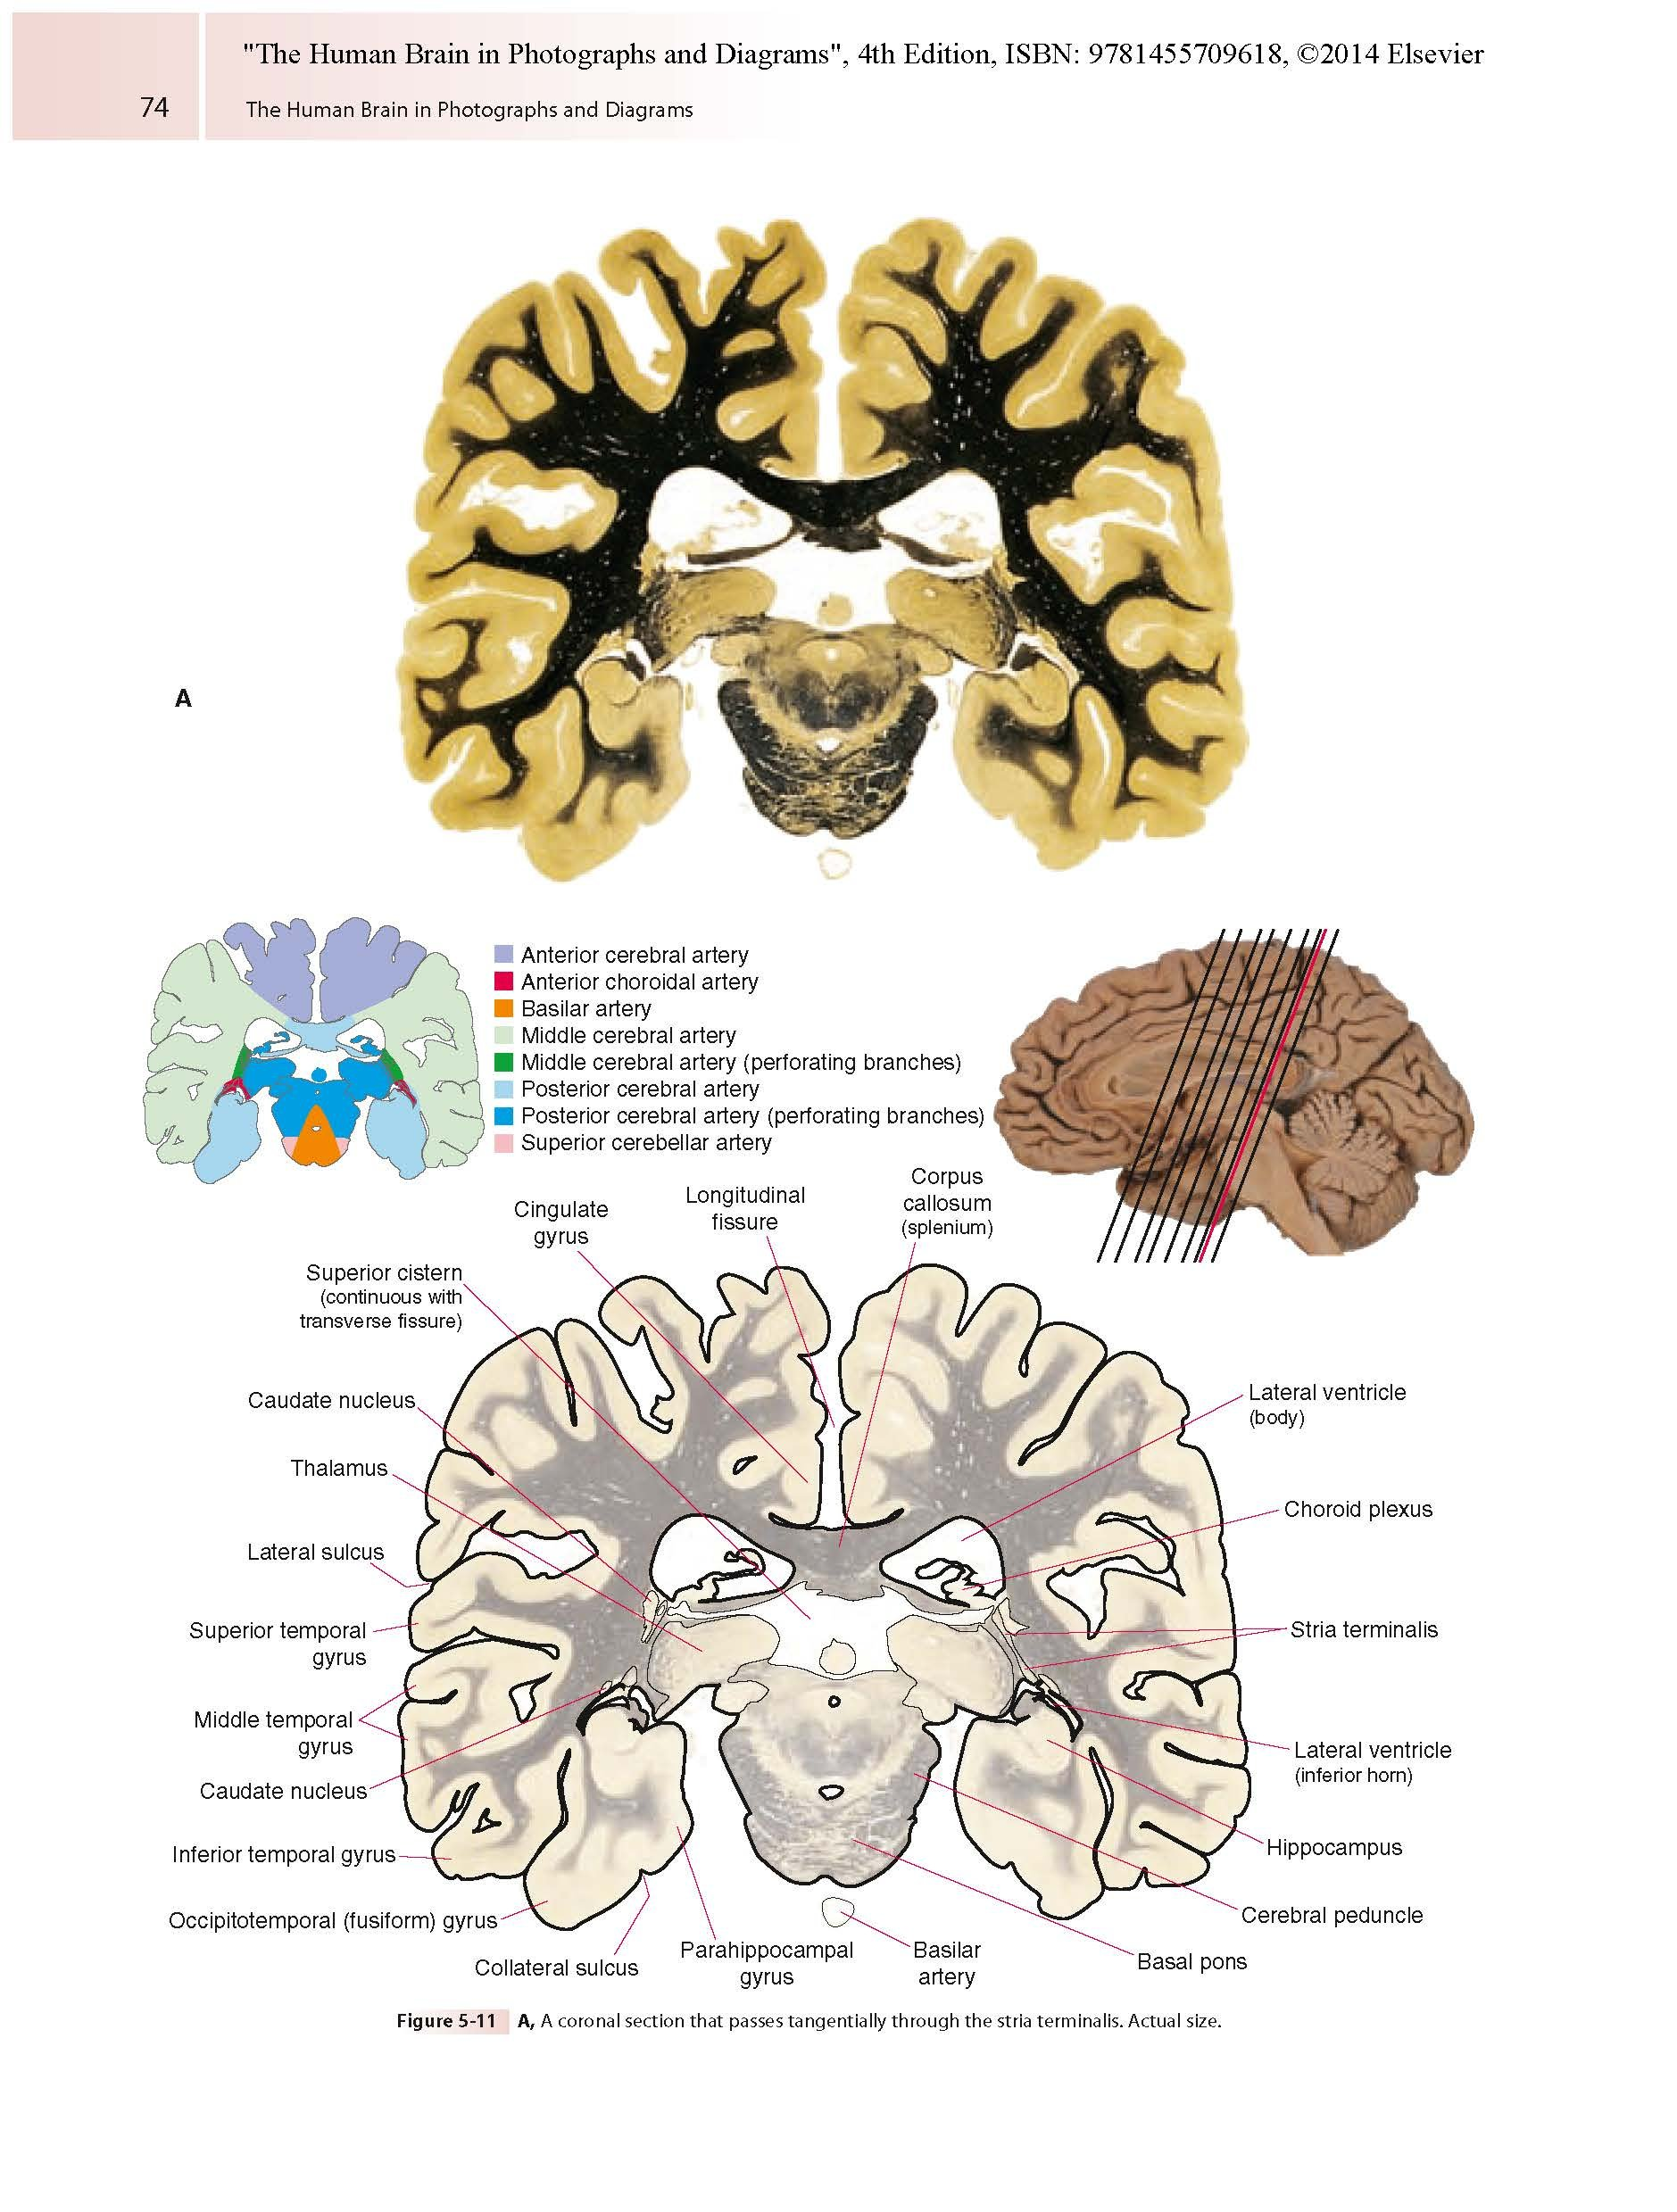 The human brain in photographs and diagrams livros na amazon the human brain in photographs and diagrams livros na amazon brasil 9781455709618 ccuart Choice Image